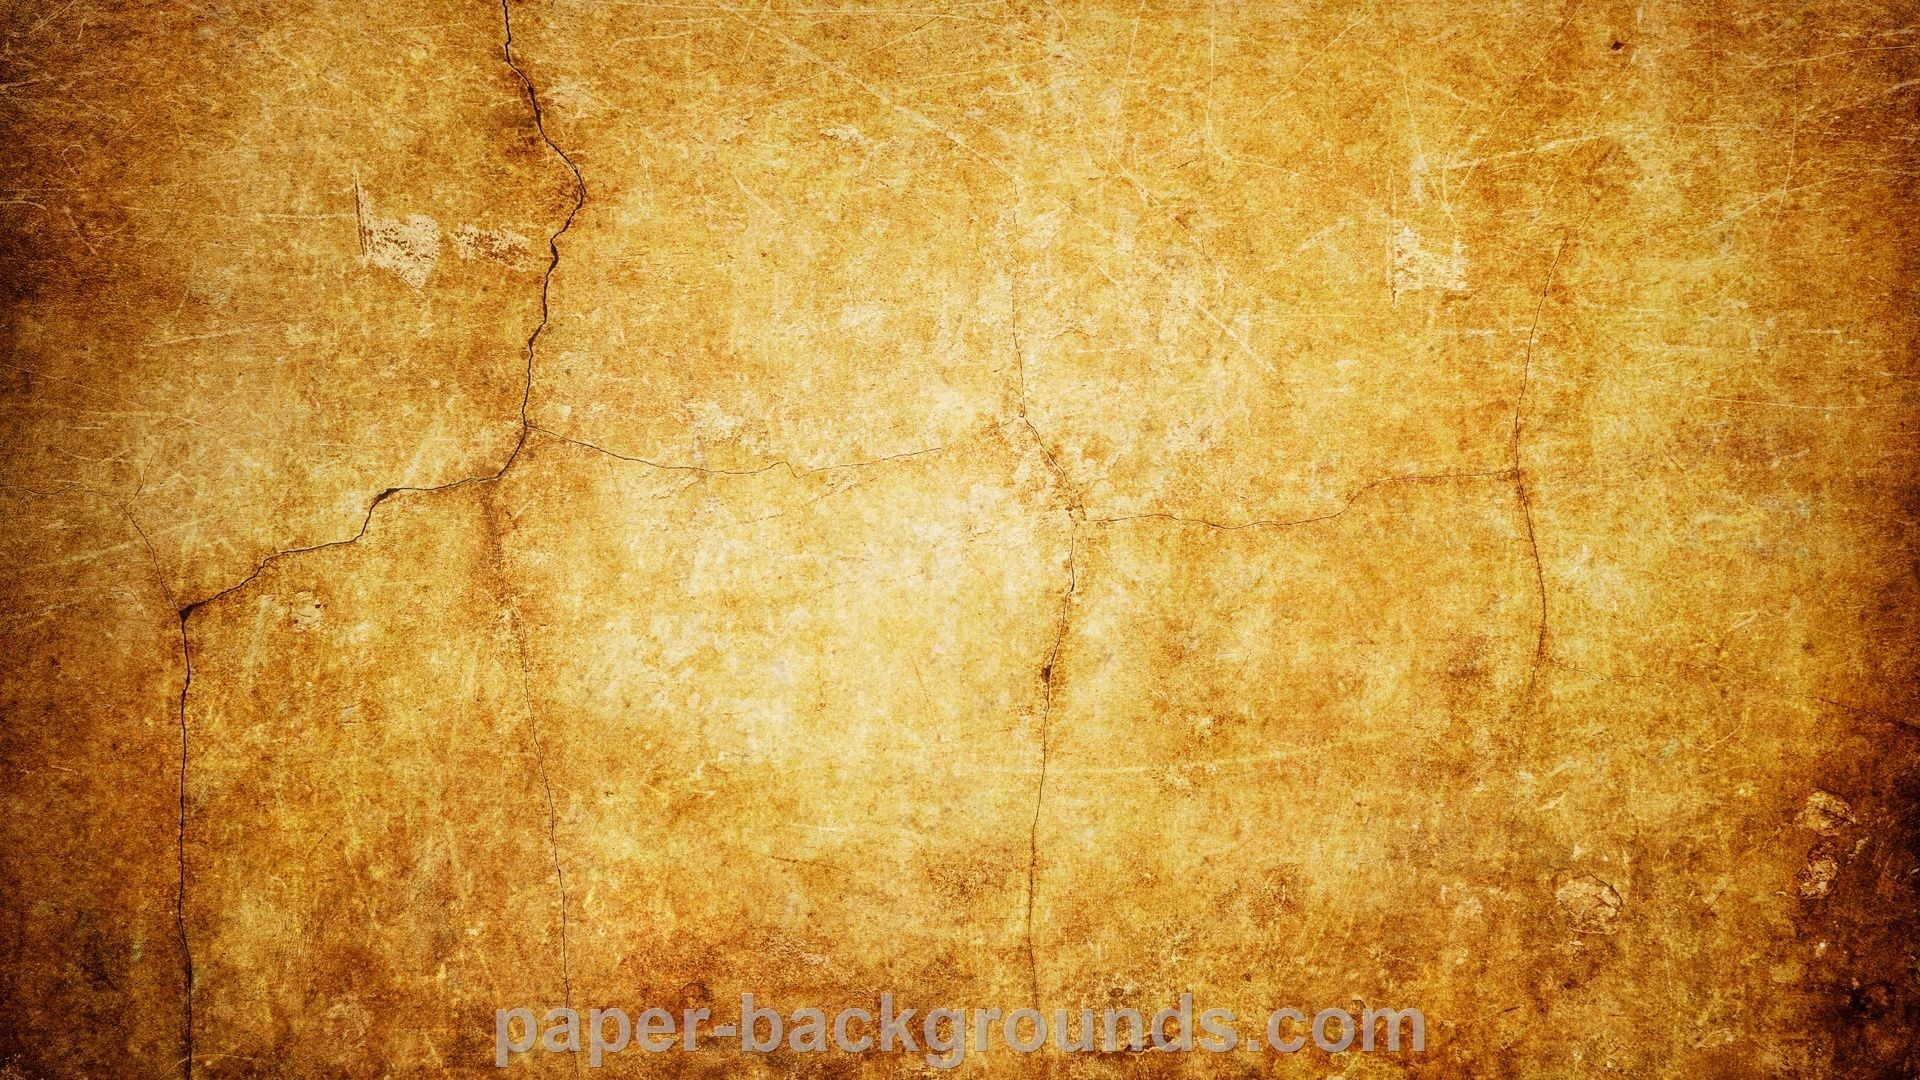 Res: 1920x1080, Background Wallpaper   vintage-wall-texture-background-hd   Paper  Backgrounds